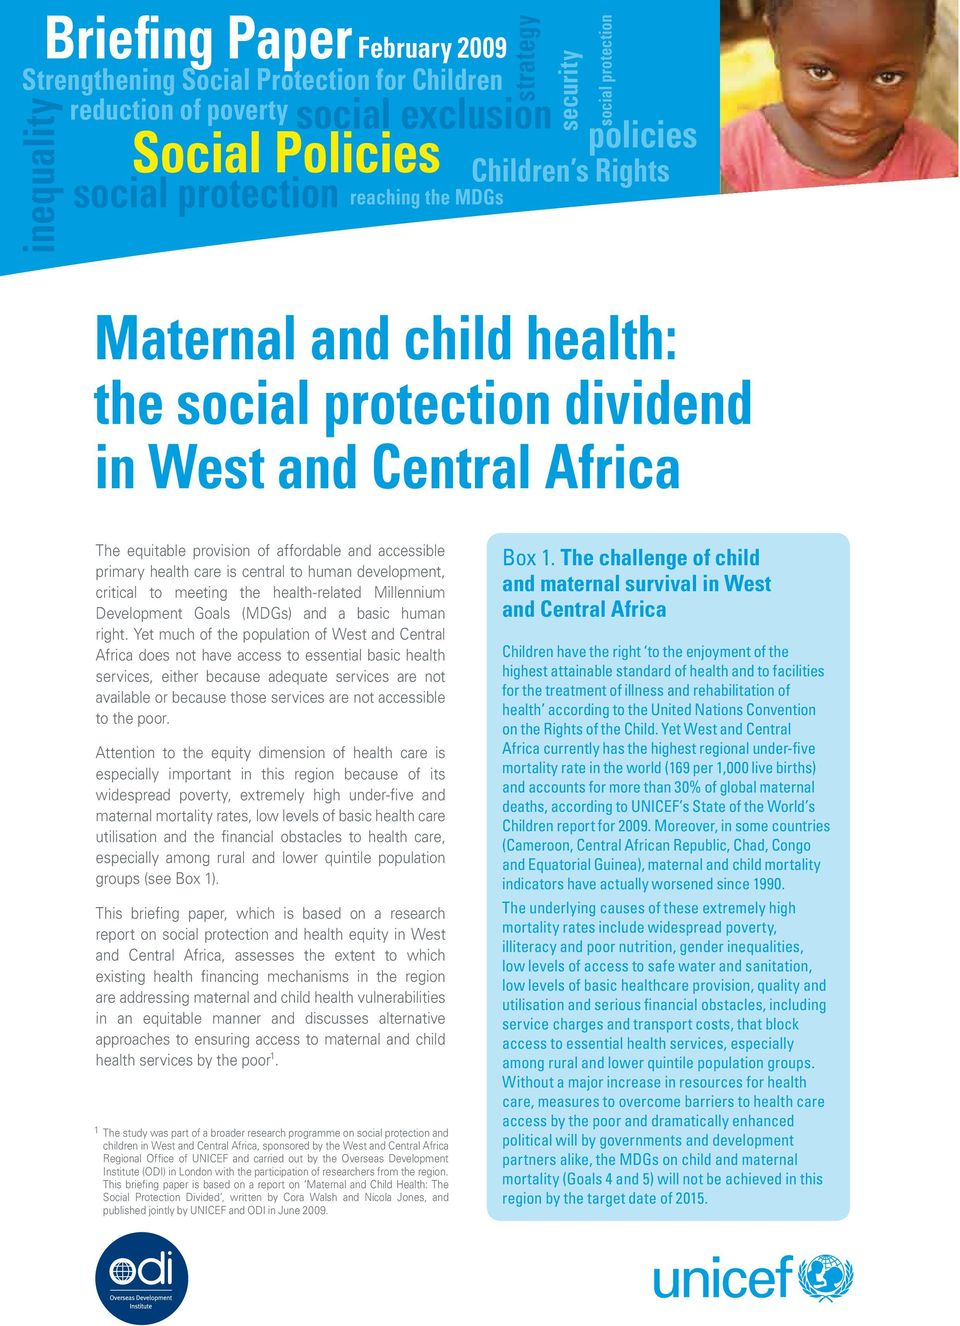 central to human development, critical to meeting the health-related Millennium Development Goals (MDGs) and a basic human right.